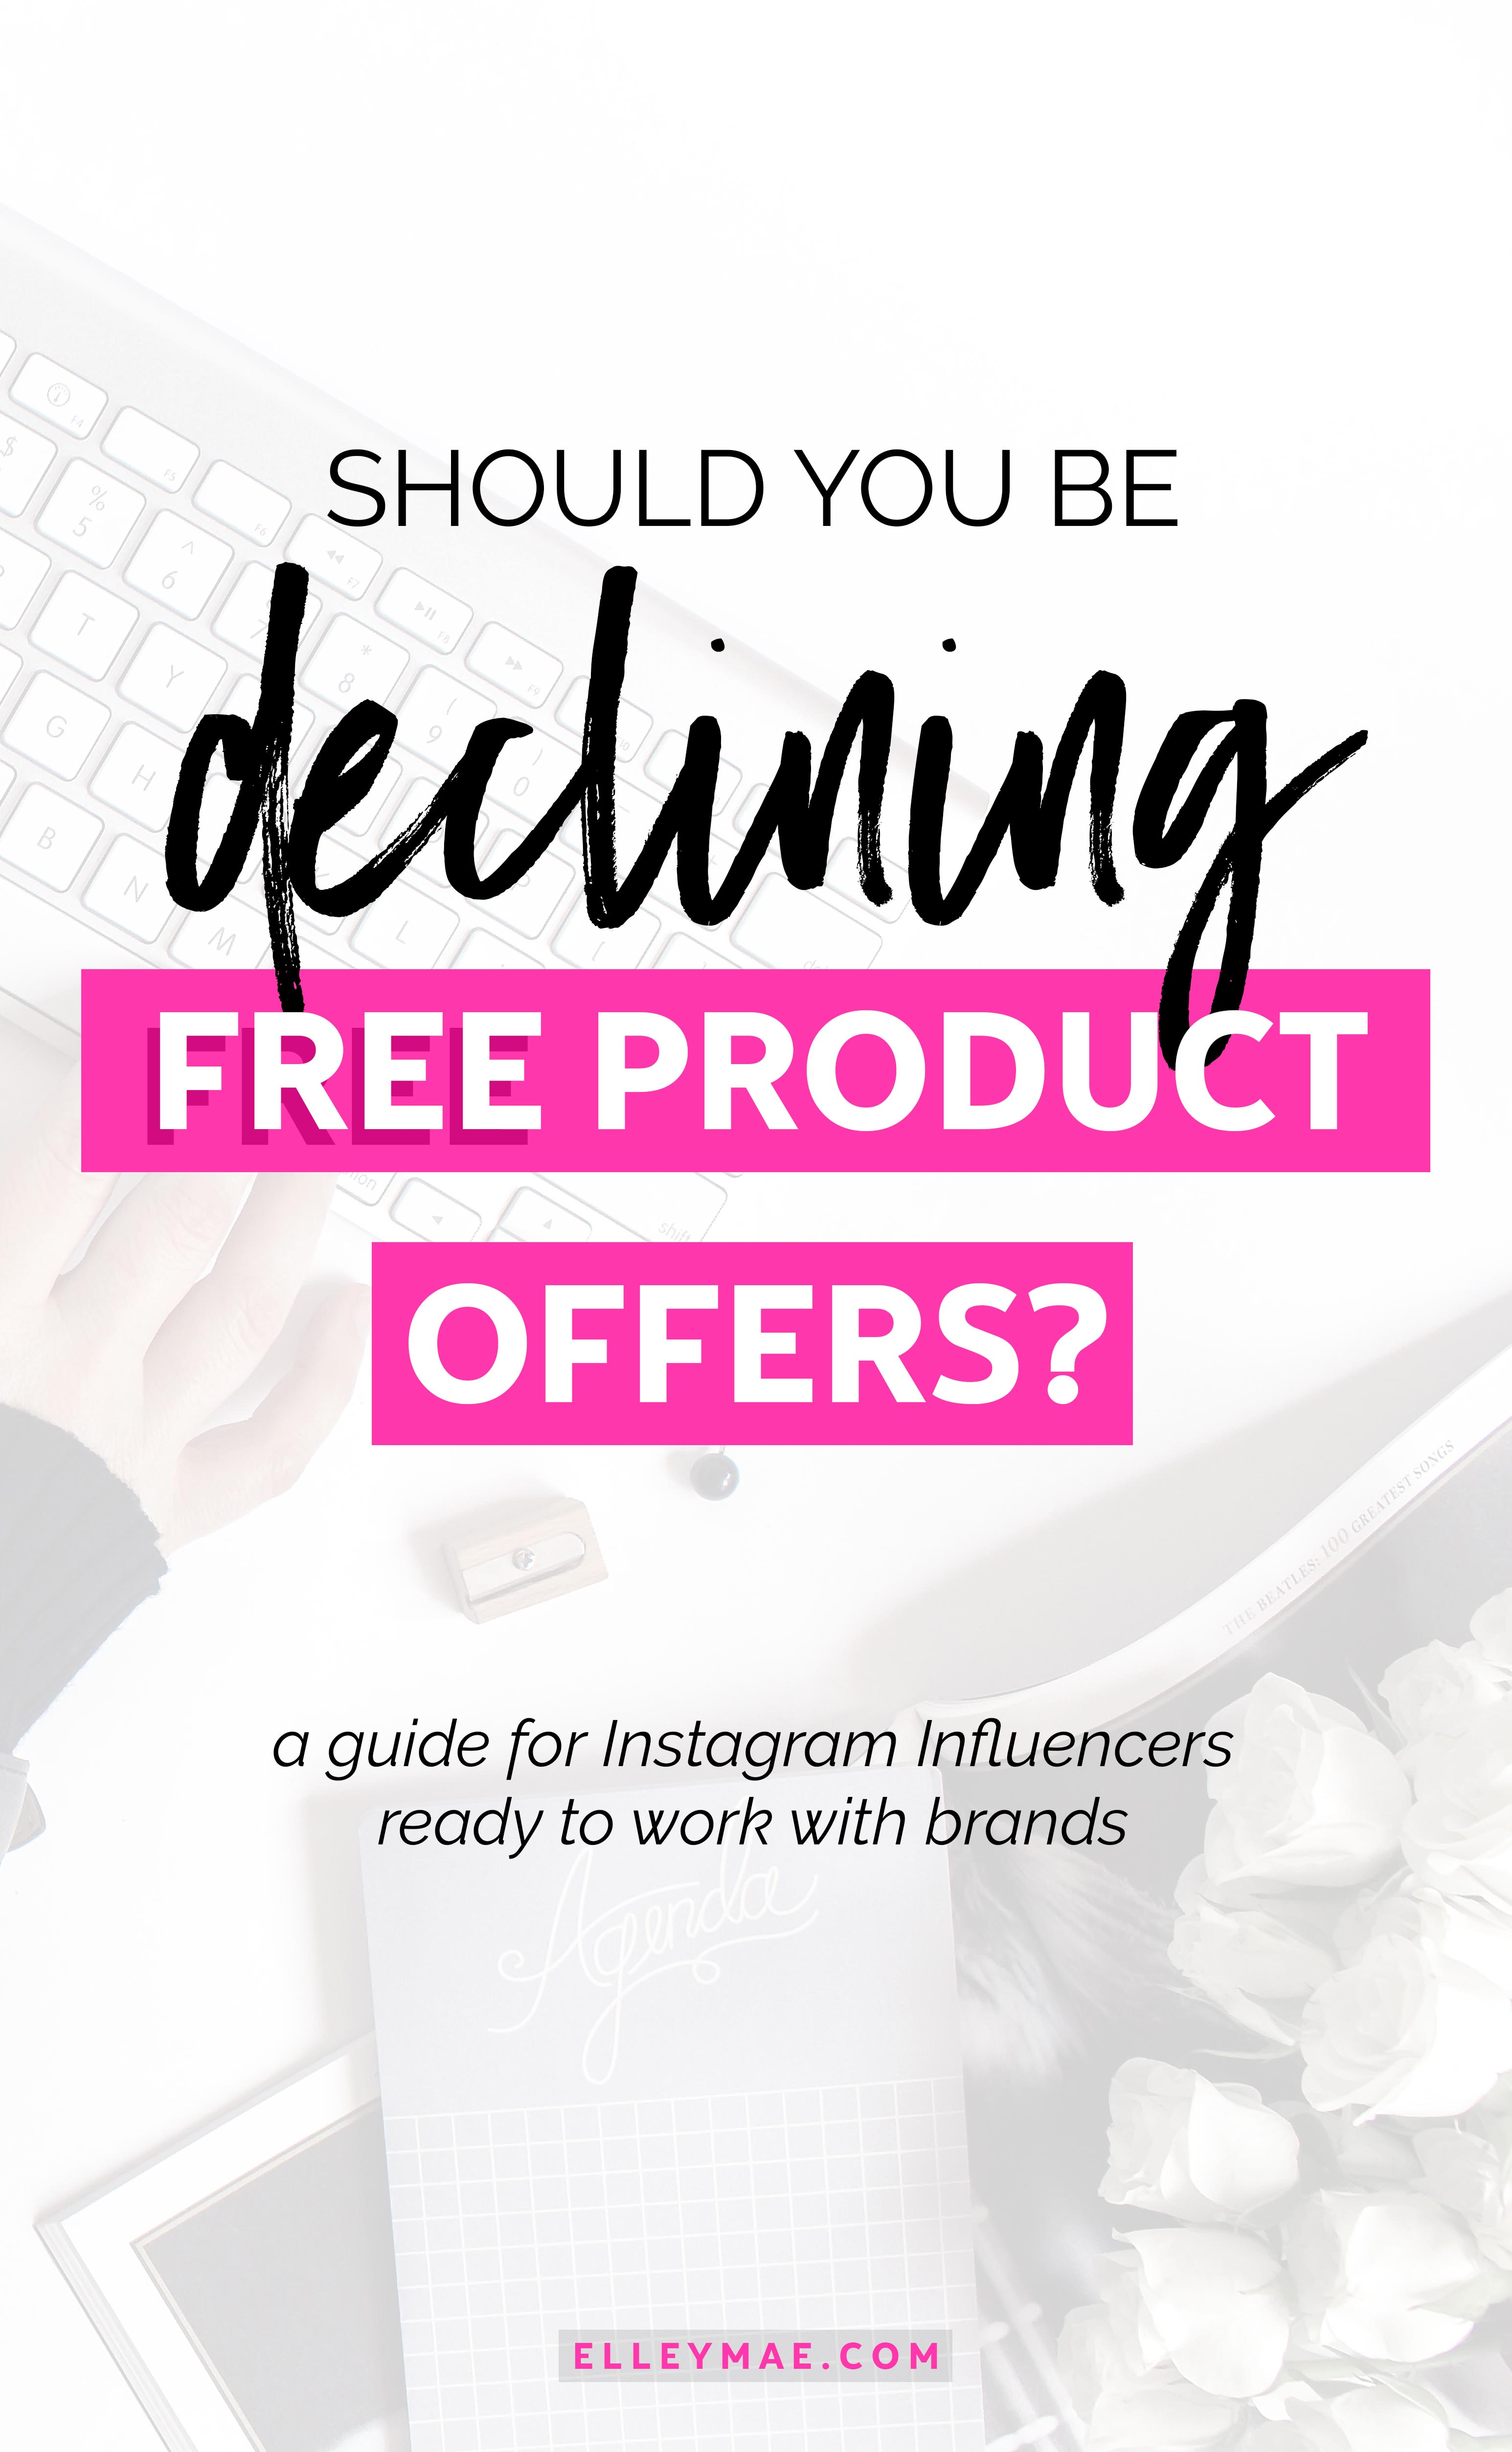 Everyone loves getting free stuff right?! Well, when it comes to being an Instagram Influencer, free product offers are a normal part of the day-to-day. But, should we be accepting every free product offer? Learn when & why you should actually be saying no to brands & why | Learn more at ElleyMae.com | #instagraminfluencer #freeproducts #workwithbrands